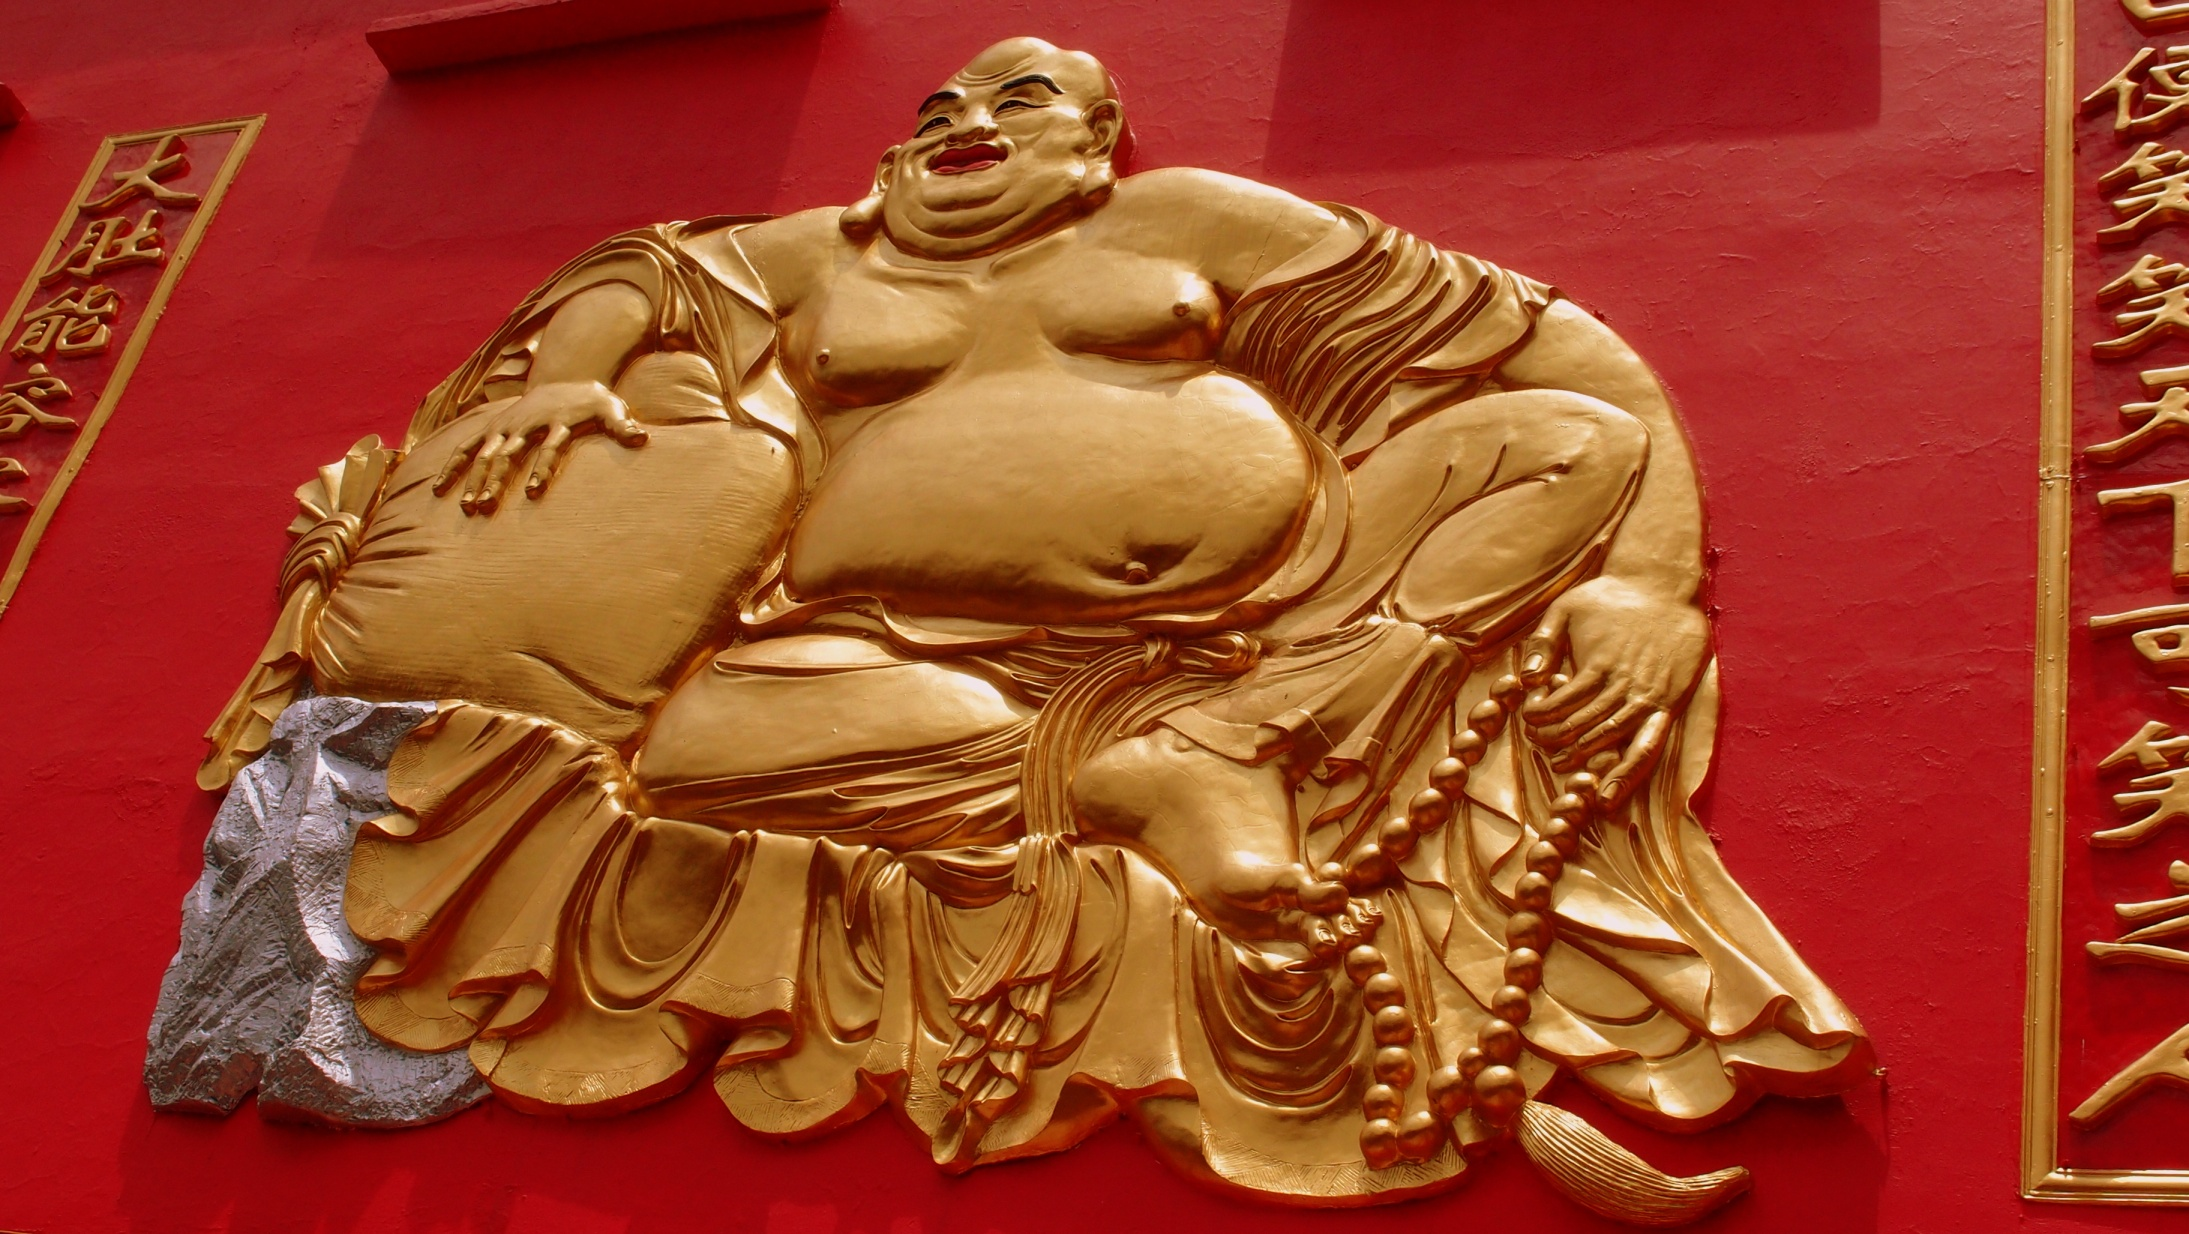 This is the jolly fat buddha at the Ten Thousand Buddha Monastery in Shatin, he hides a dark secret